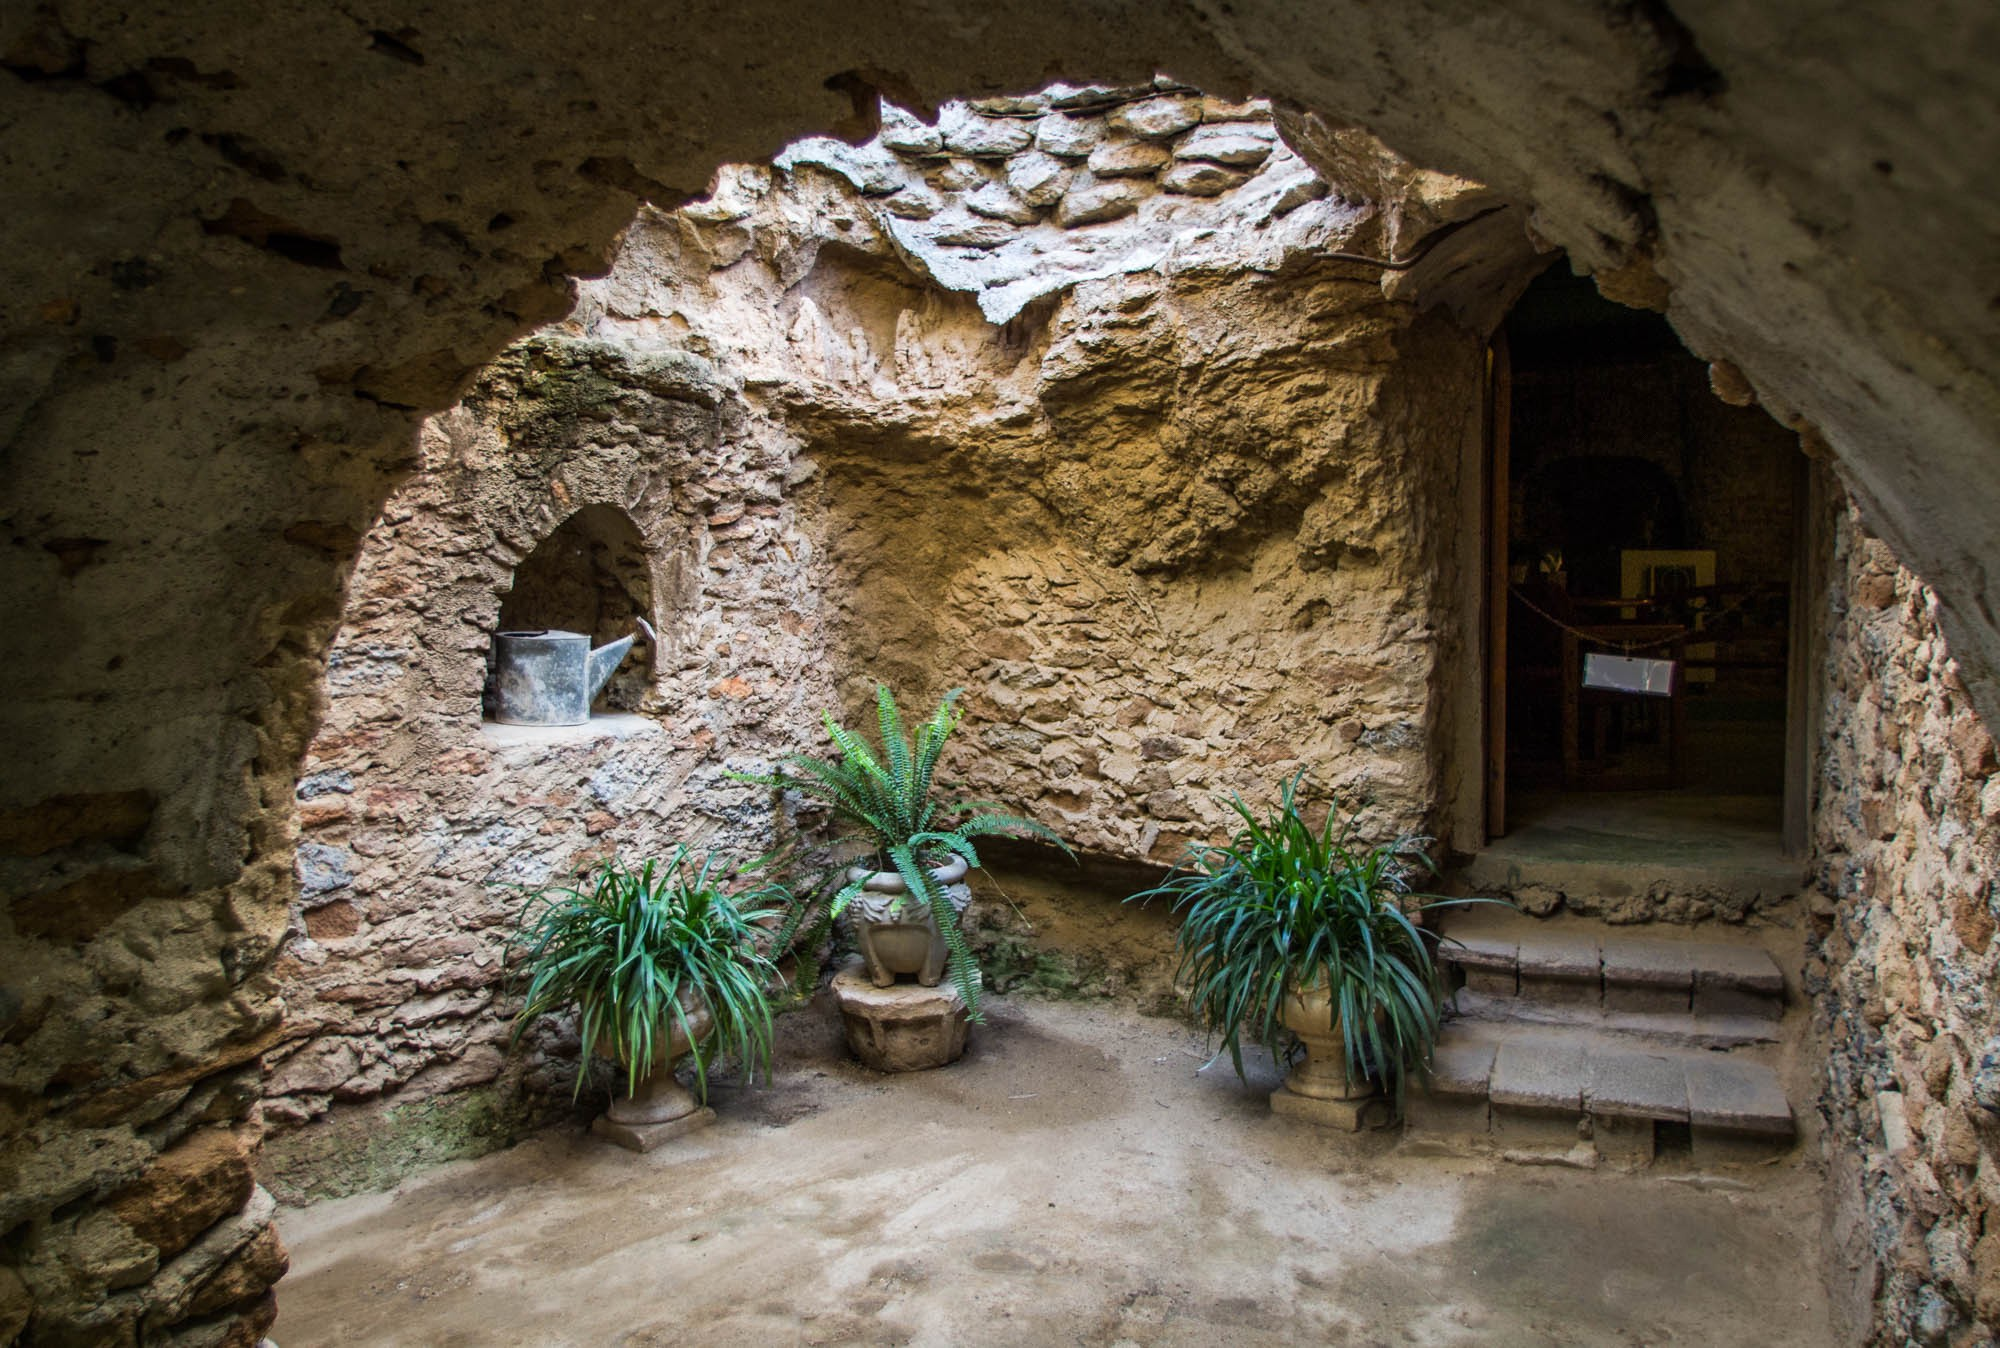 A century ago, a Sicilian immigrant carved a subterranean wonderland ...